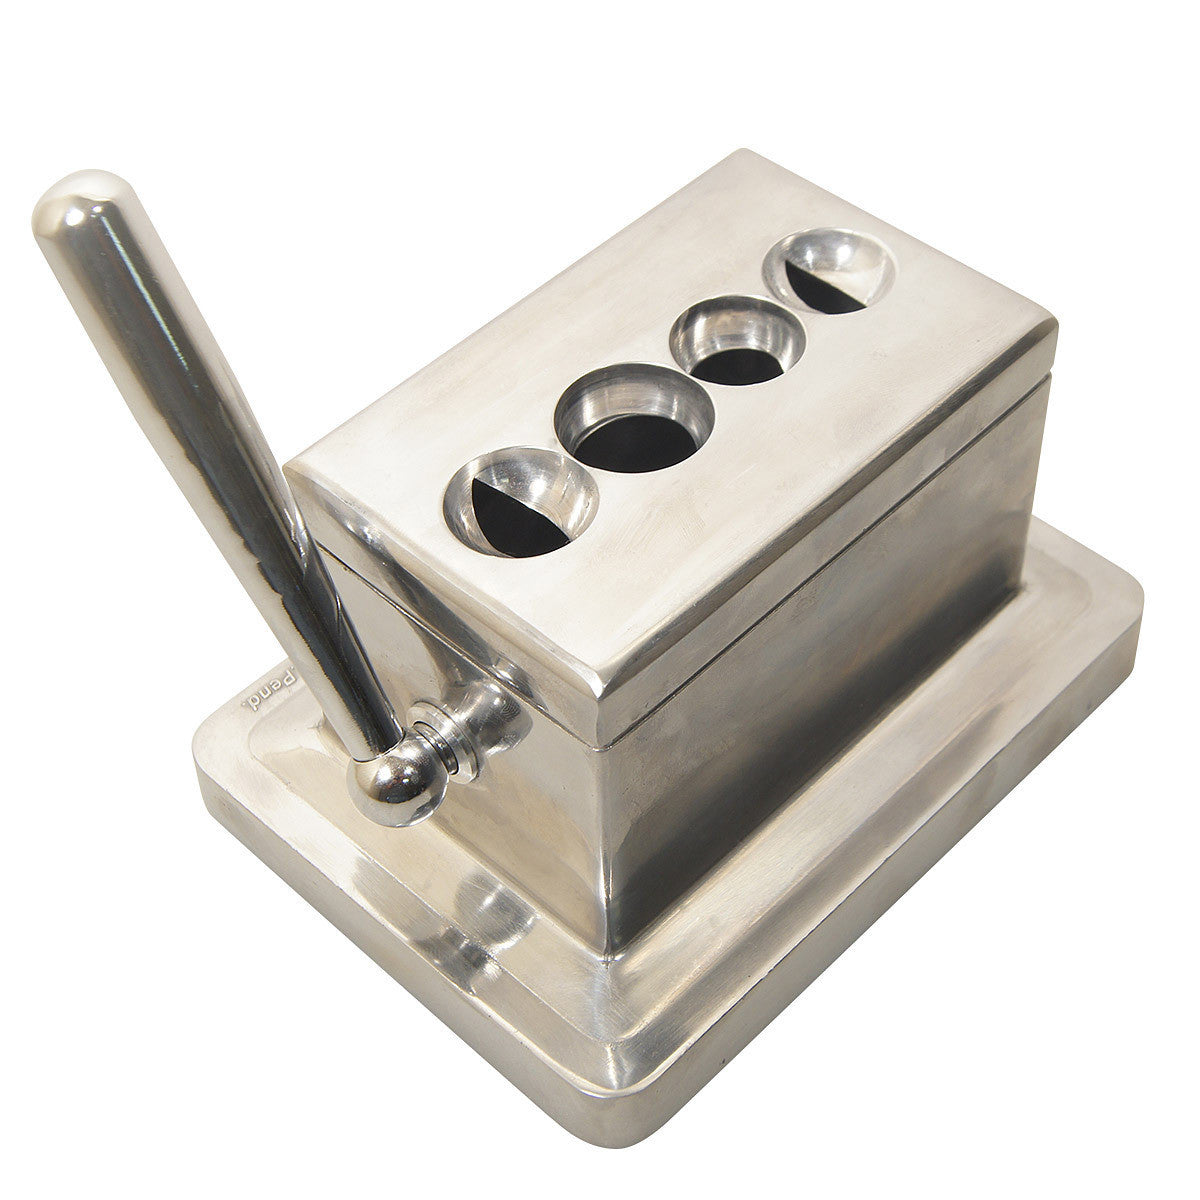 Stainless Steel Quad Cutter - Humidors Wholesaler